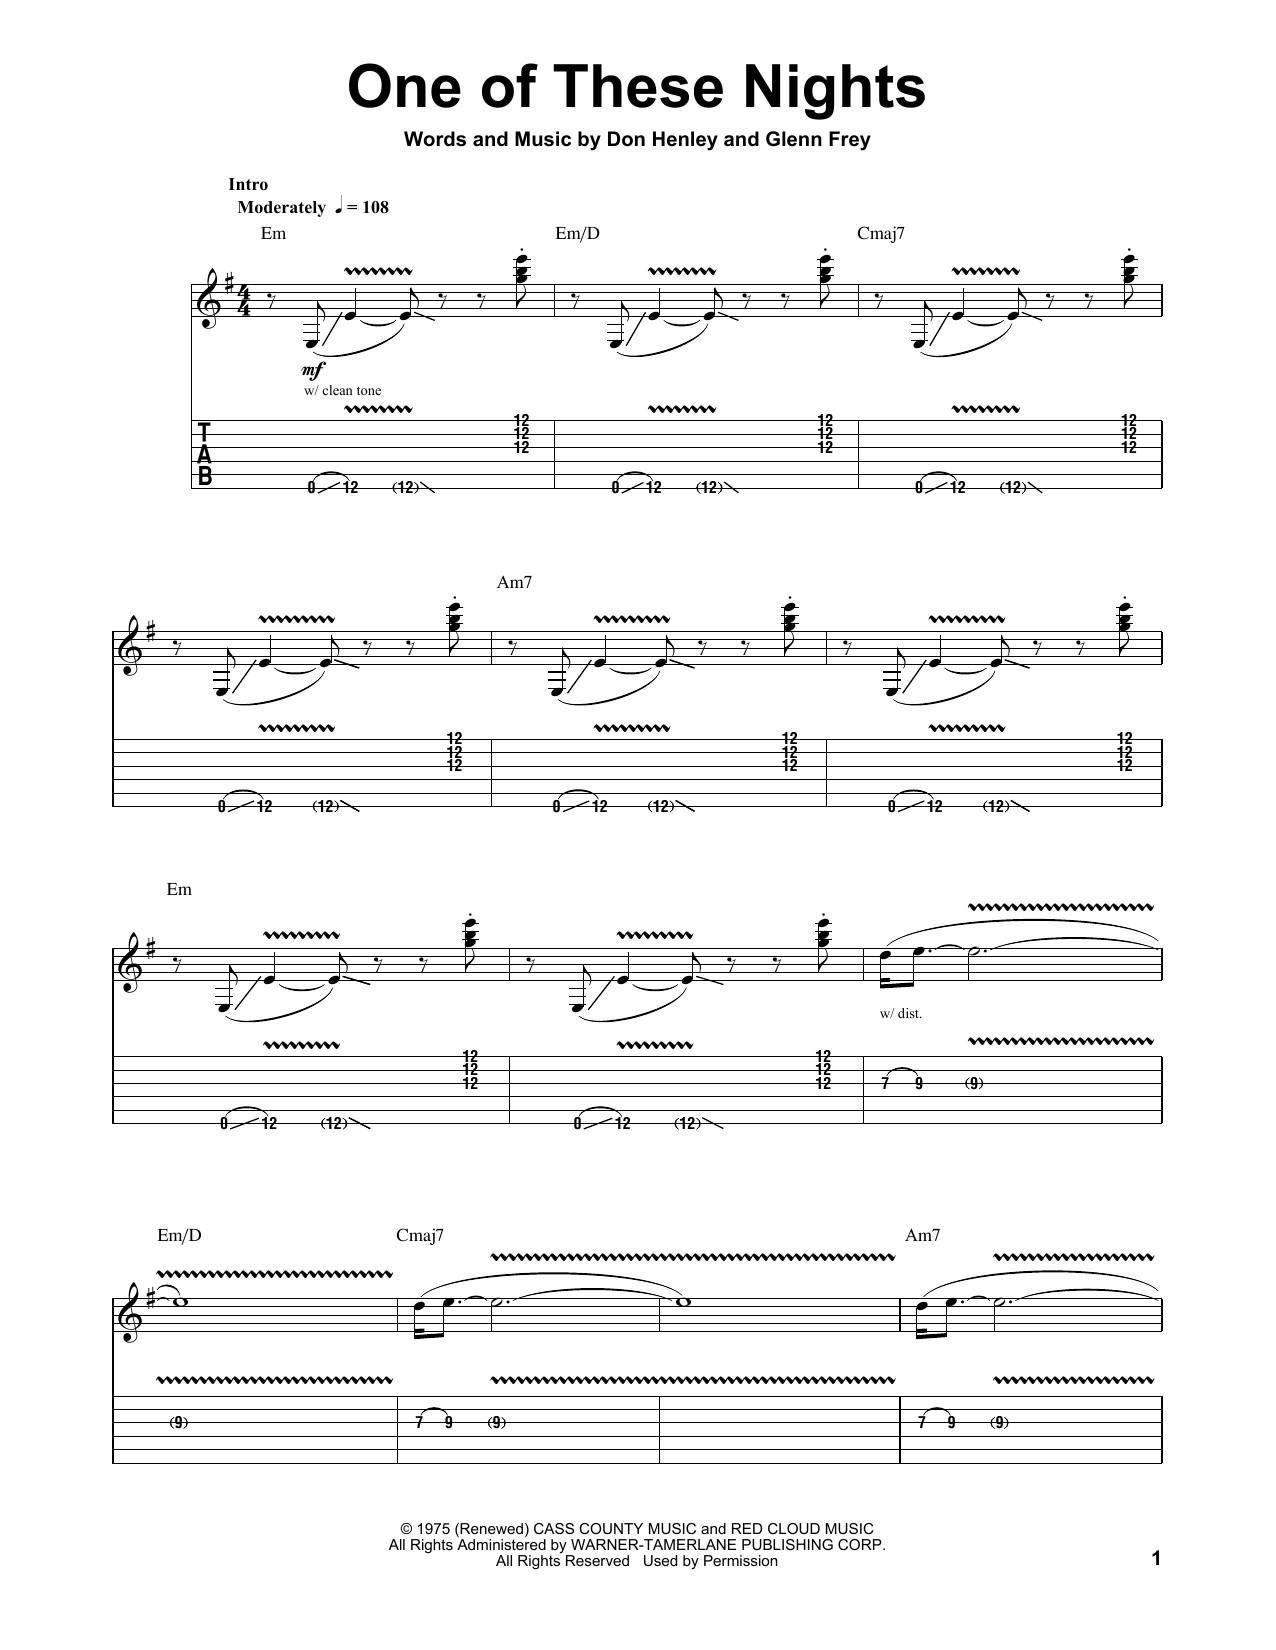 Eagles One Of These Nights sheet music notes and chords. Download Printable PDF.